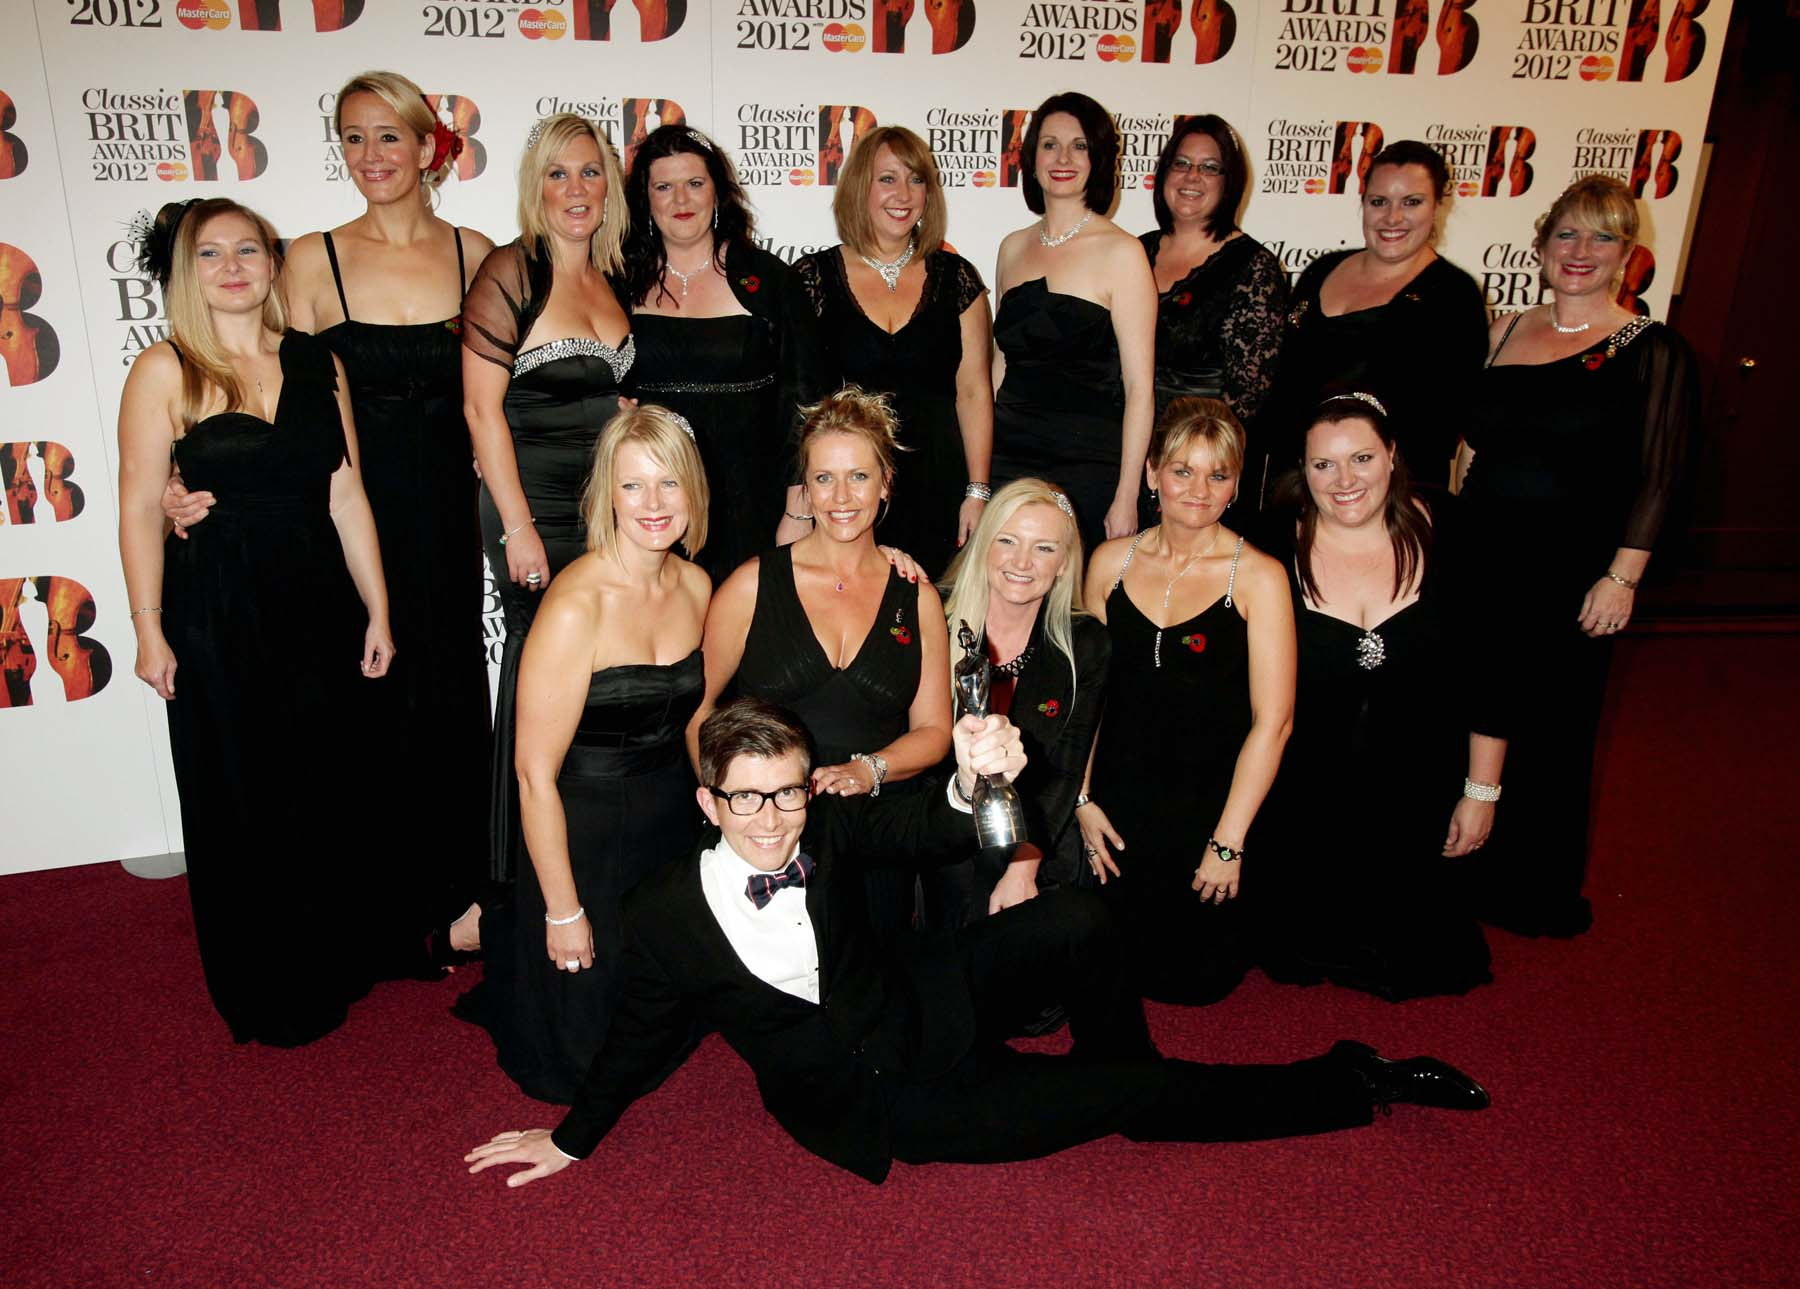 Military Wives win Classical Brit award